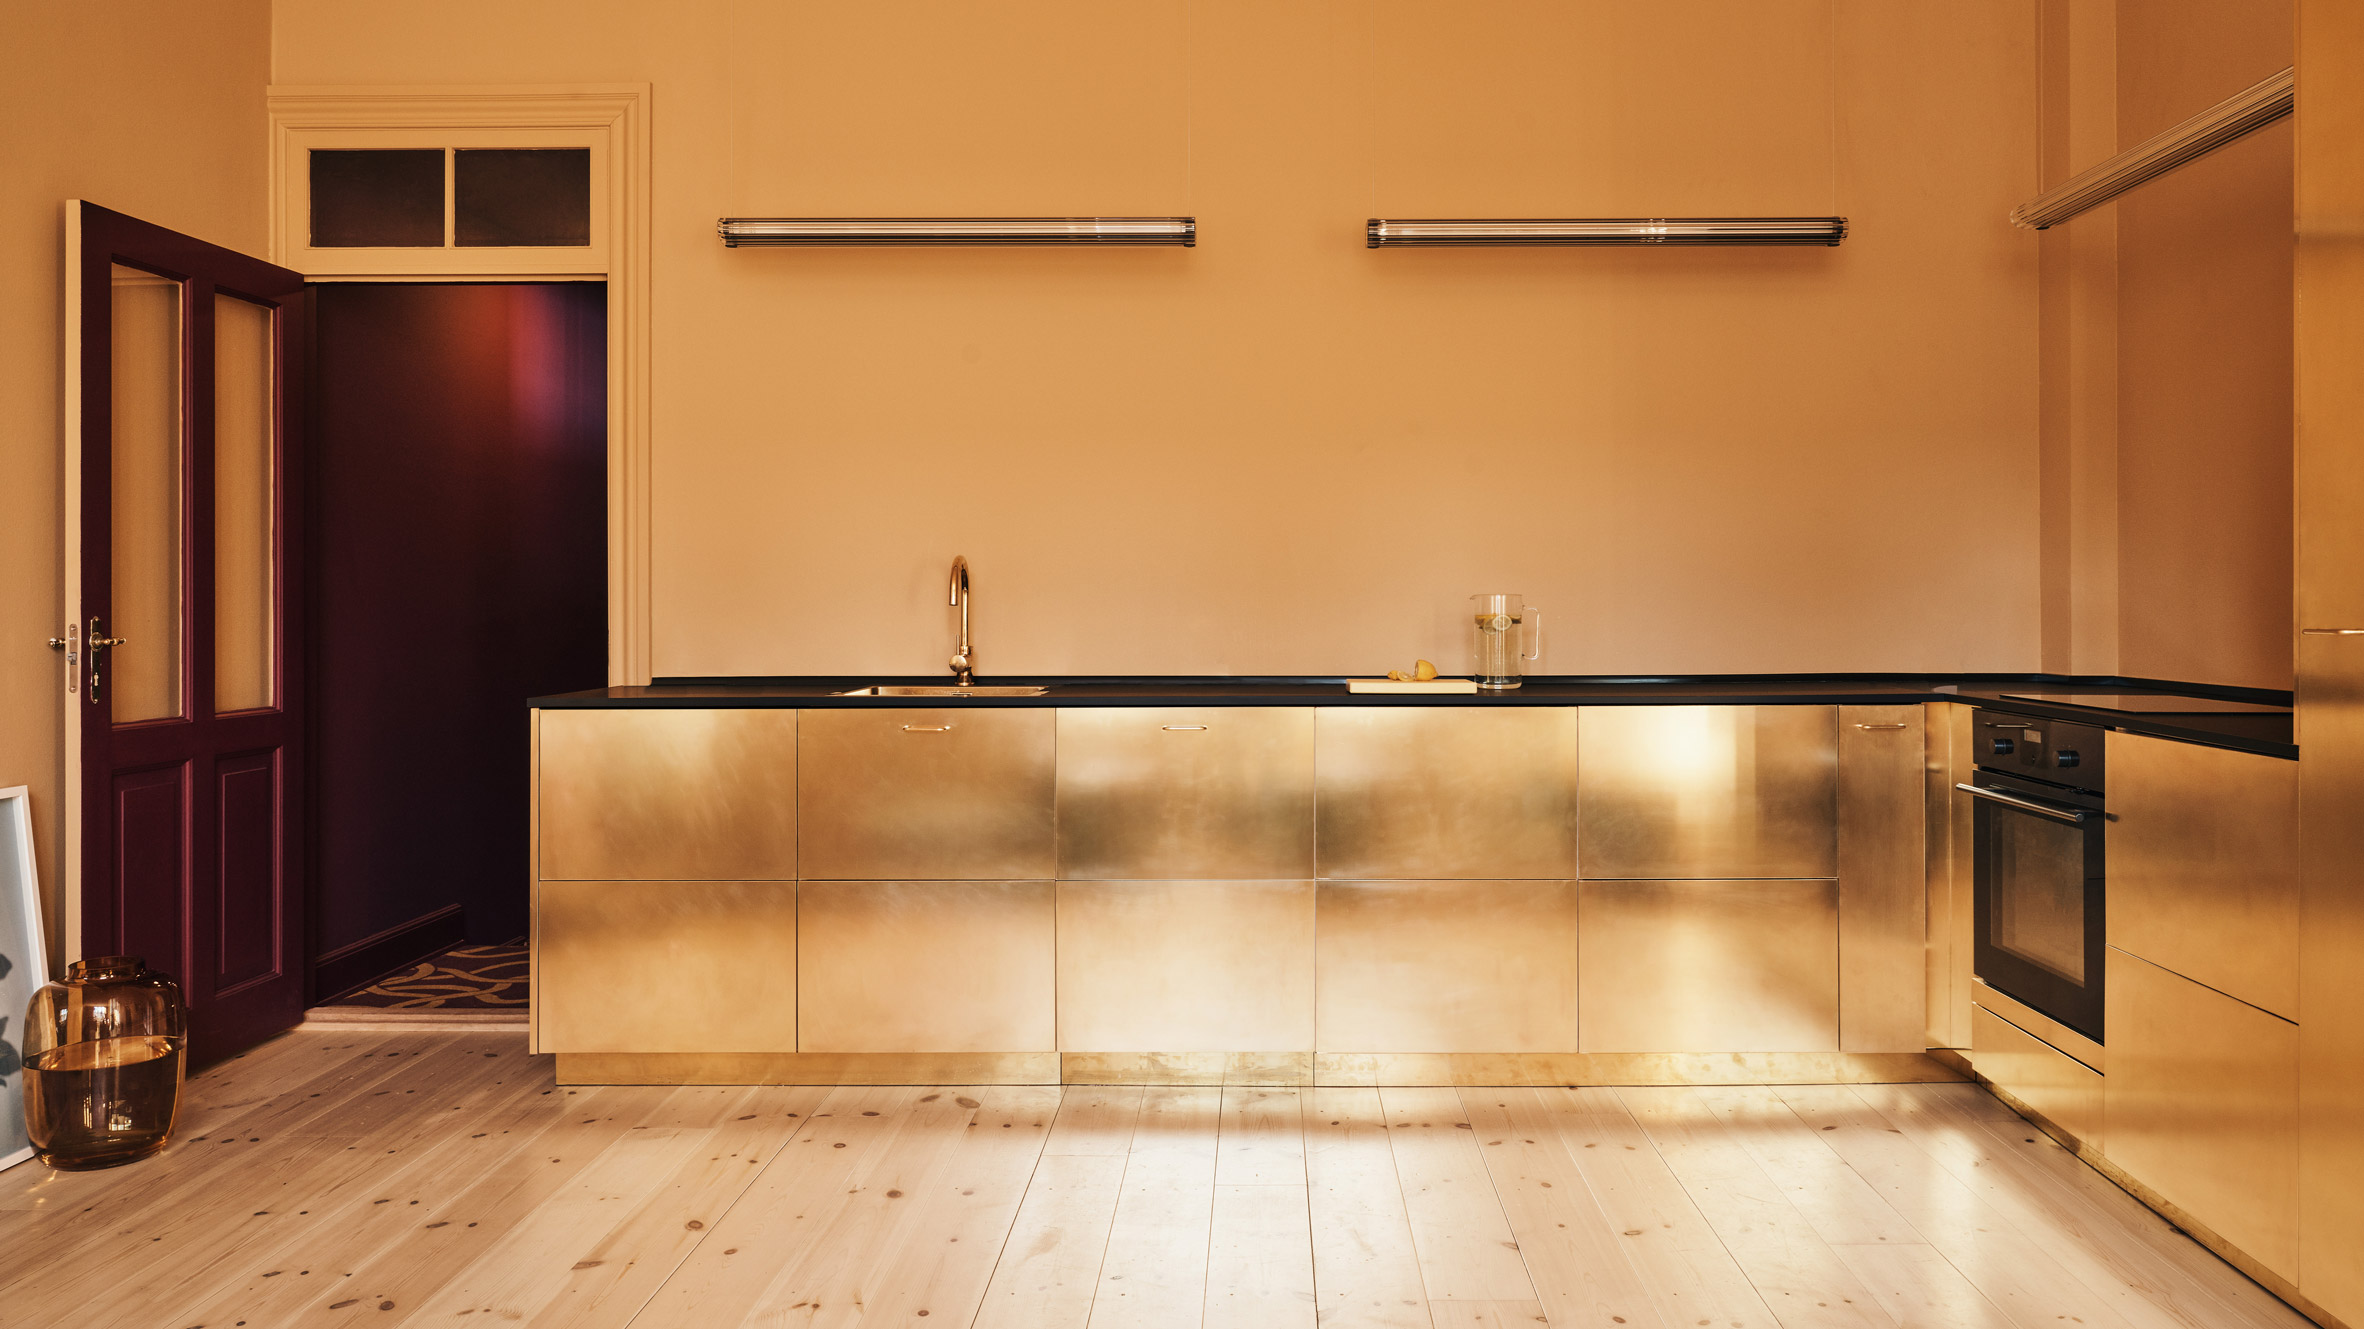 Ikea Kitchen Gets The Golden Treatment